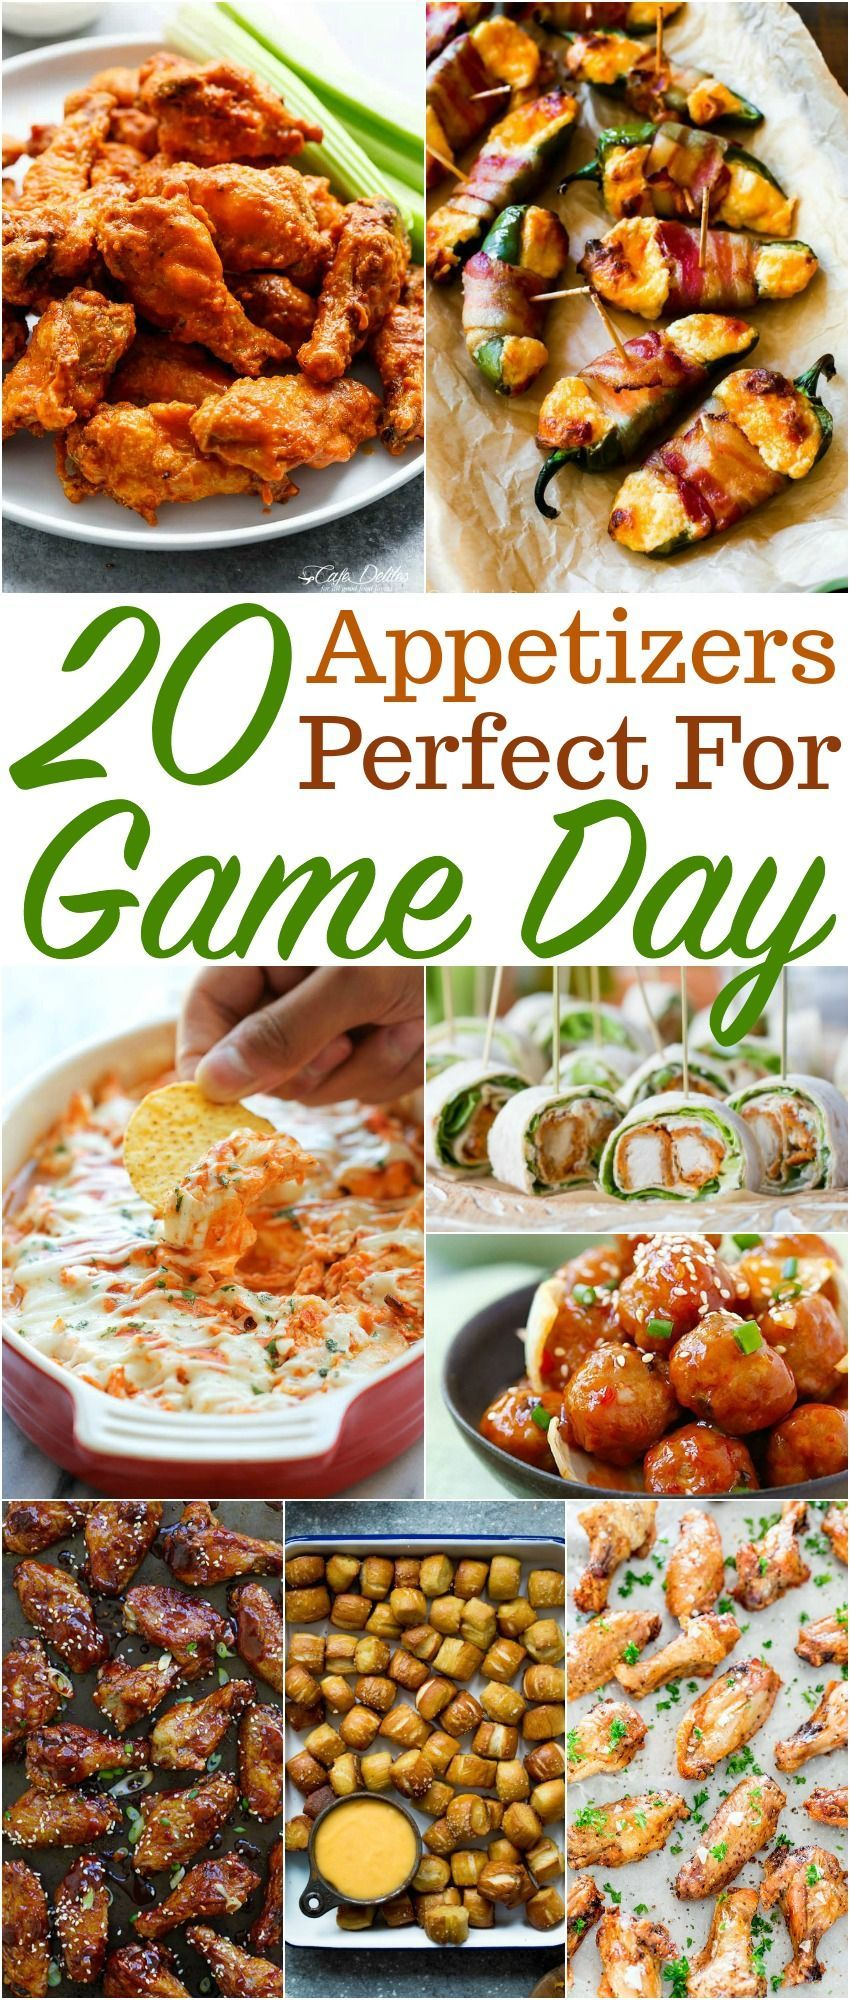 football, superbowl, basketball and even tailgating snack ideas to